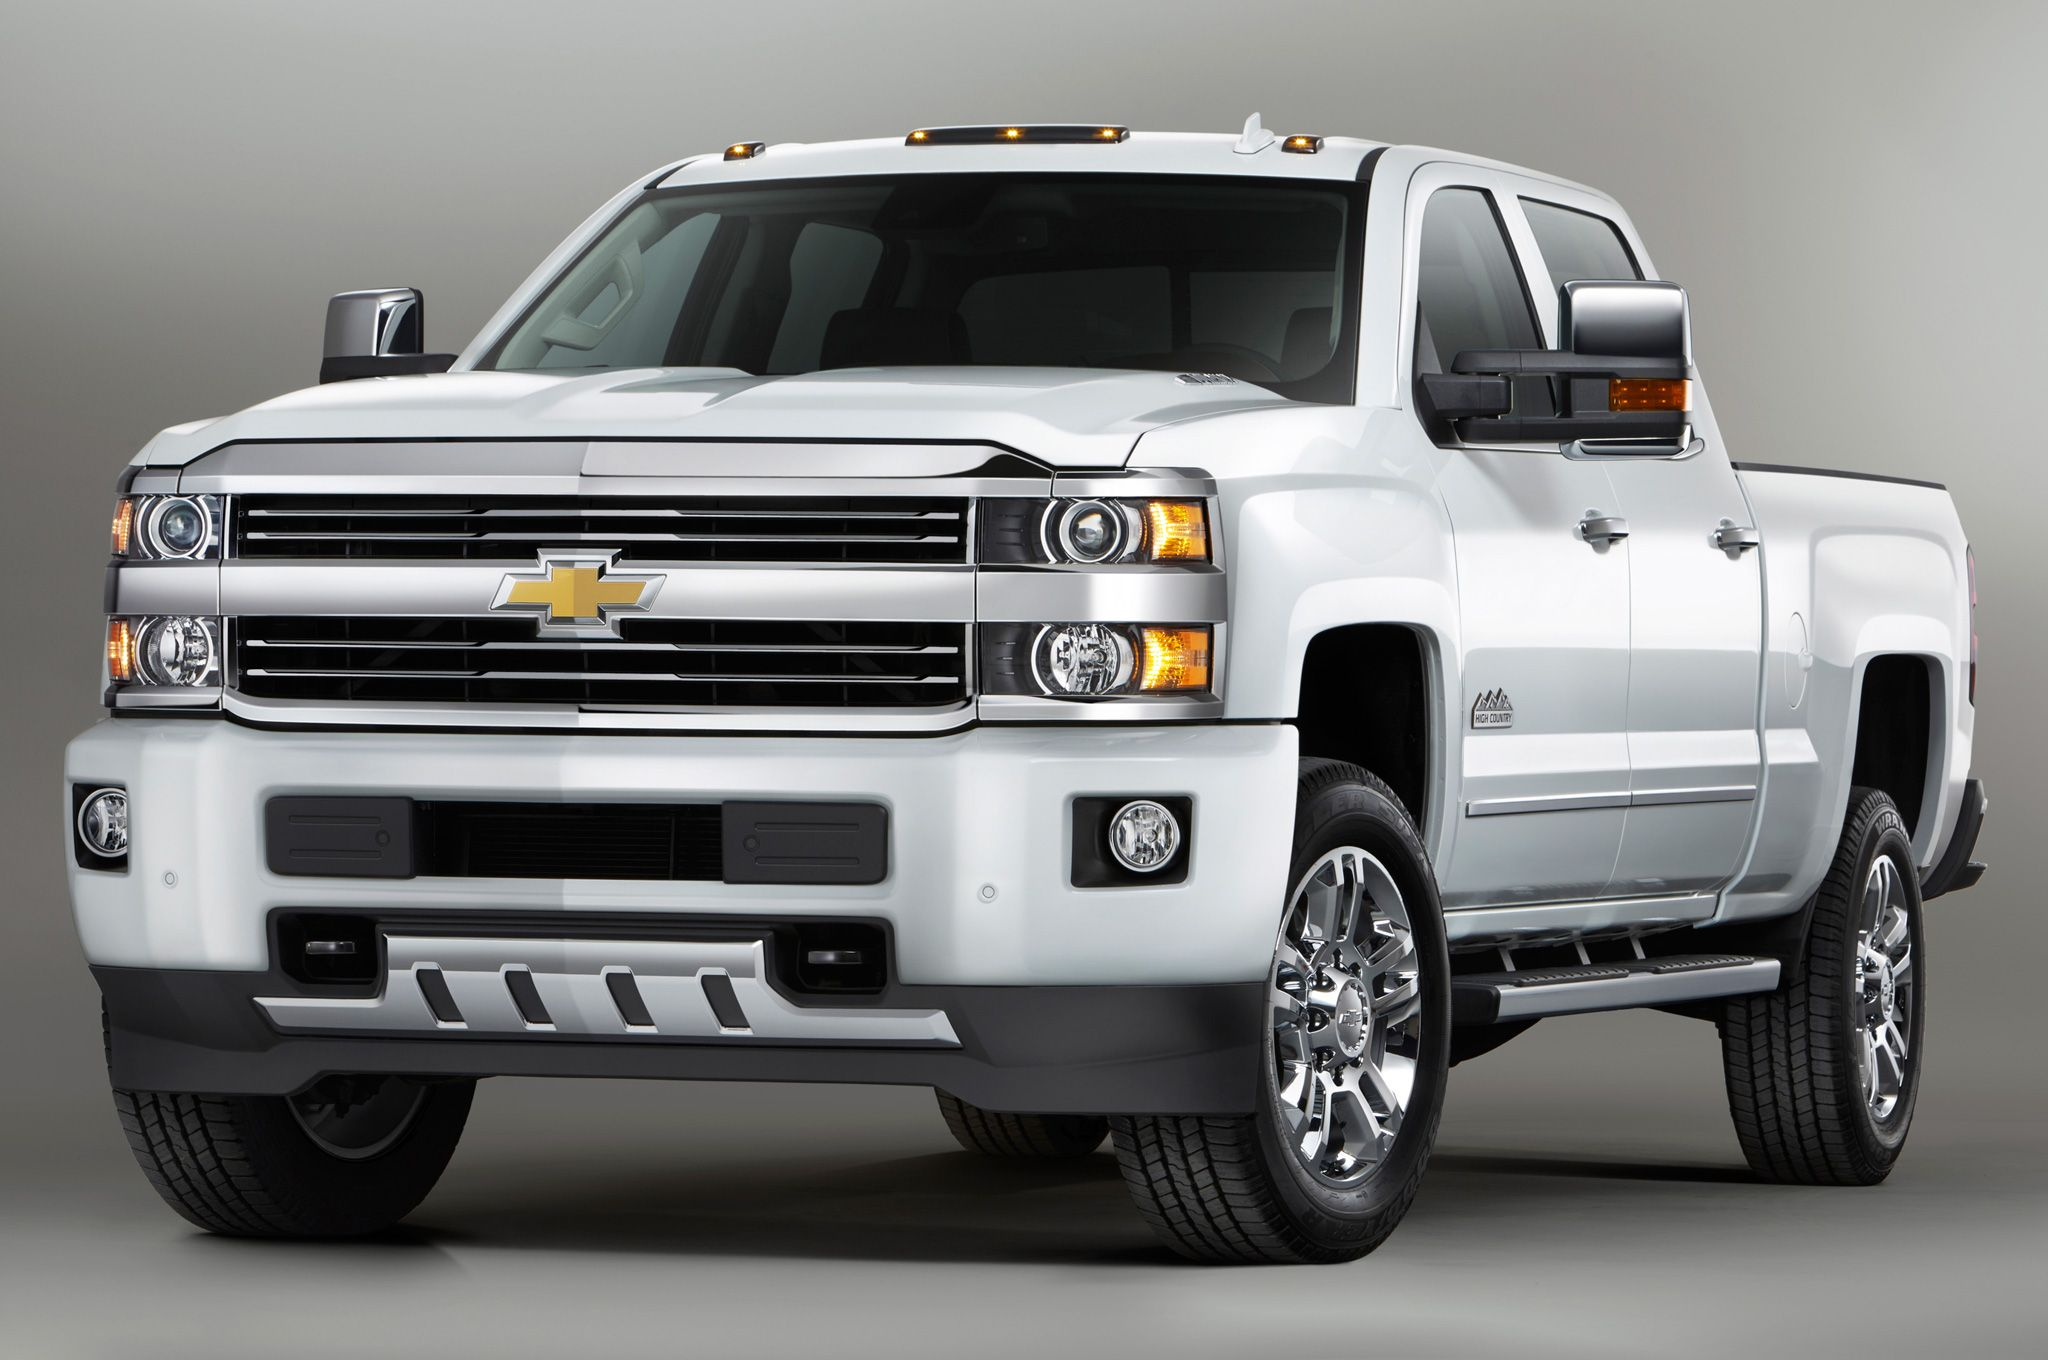 2015 Chevrolet Silverado high country